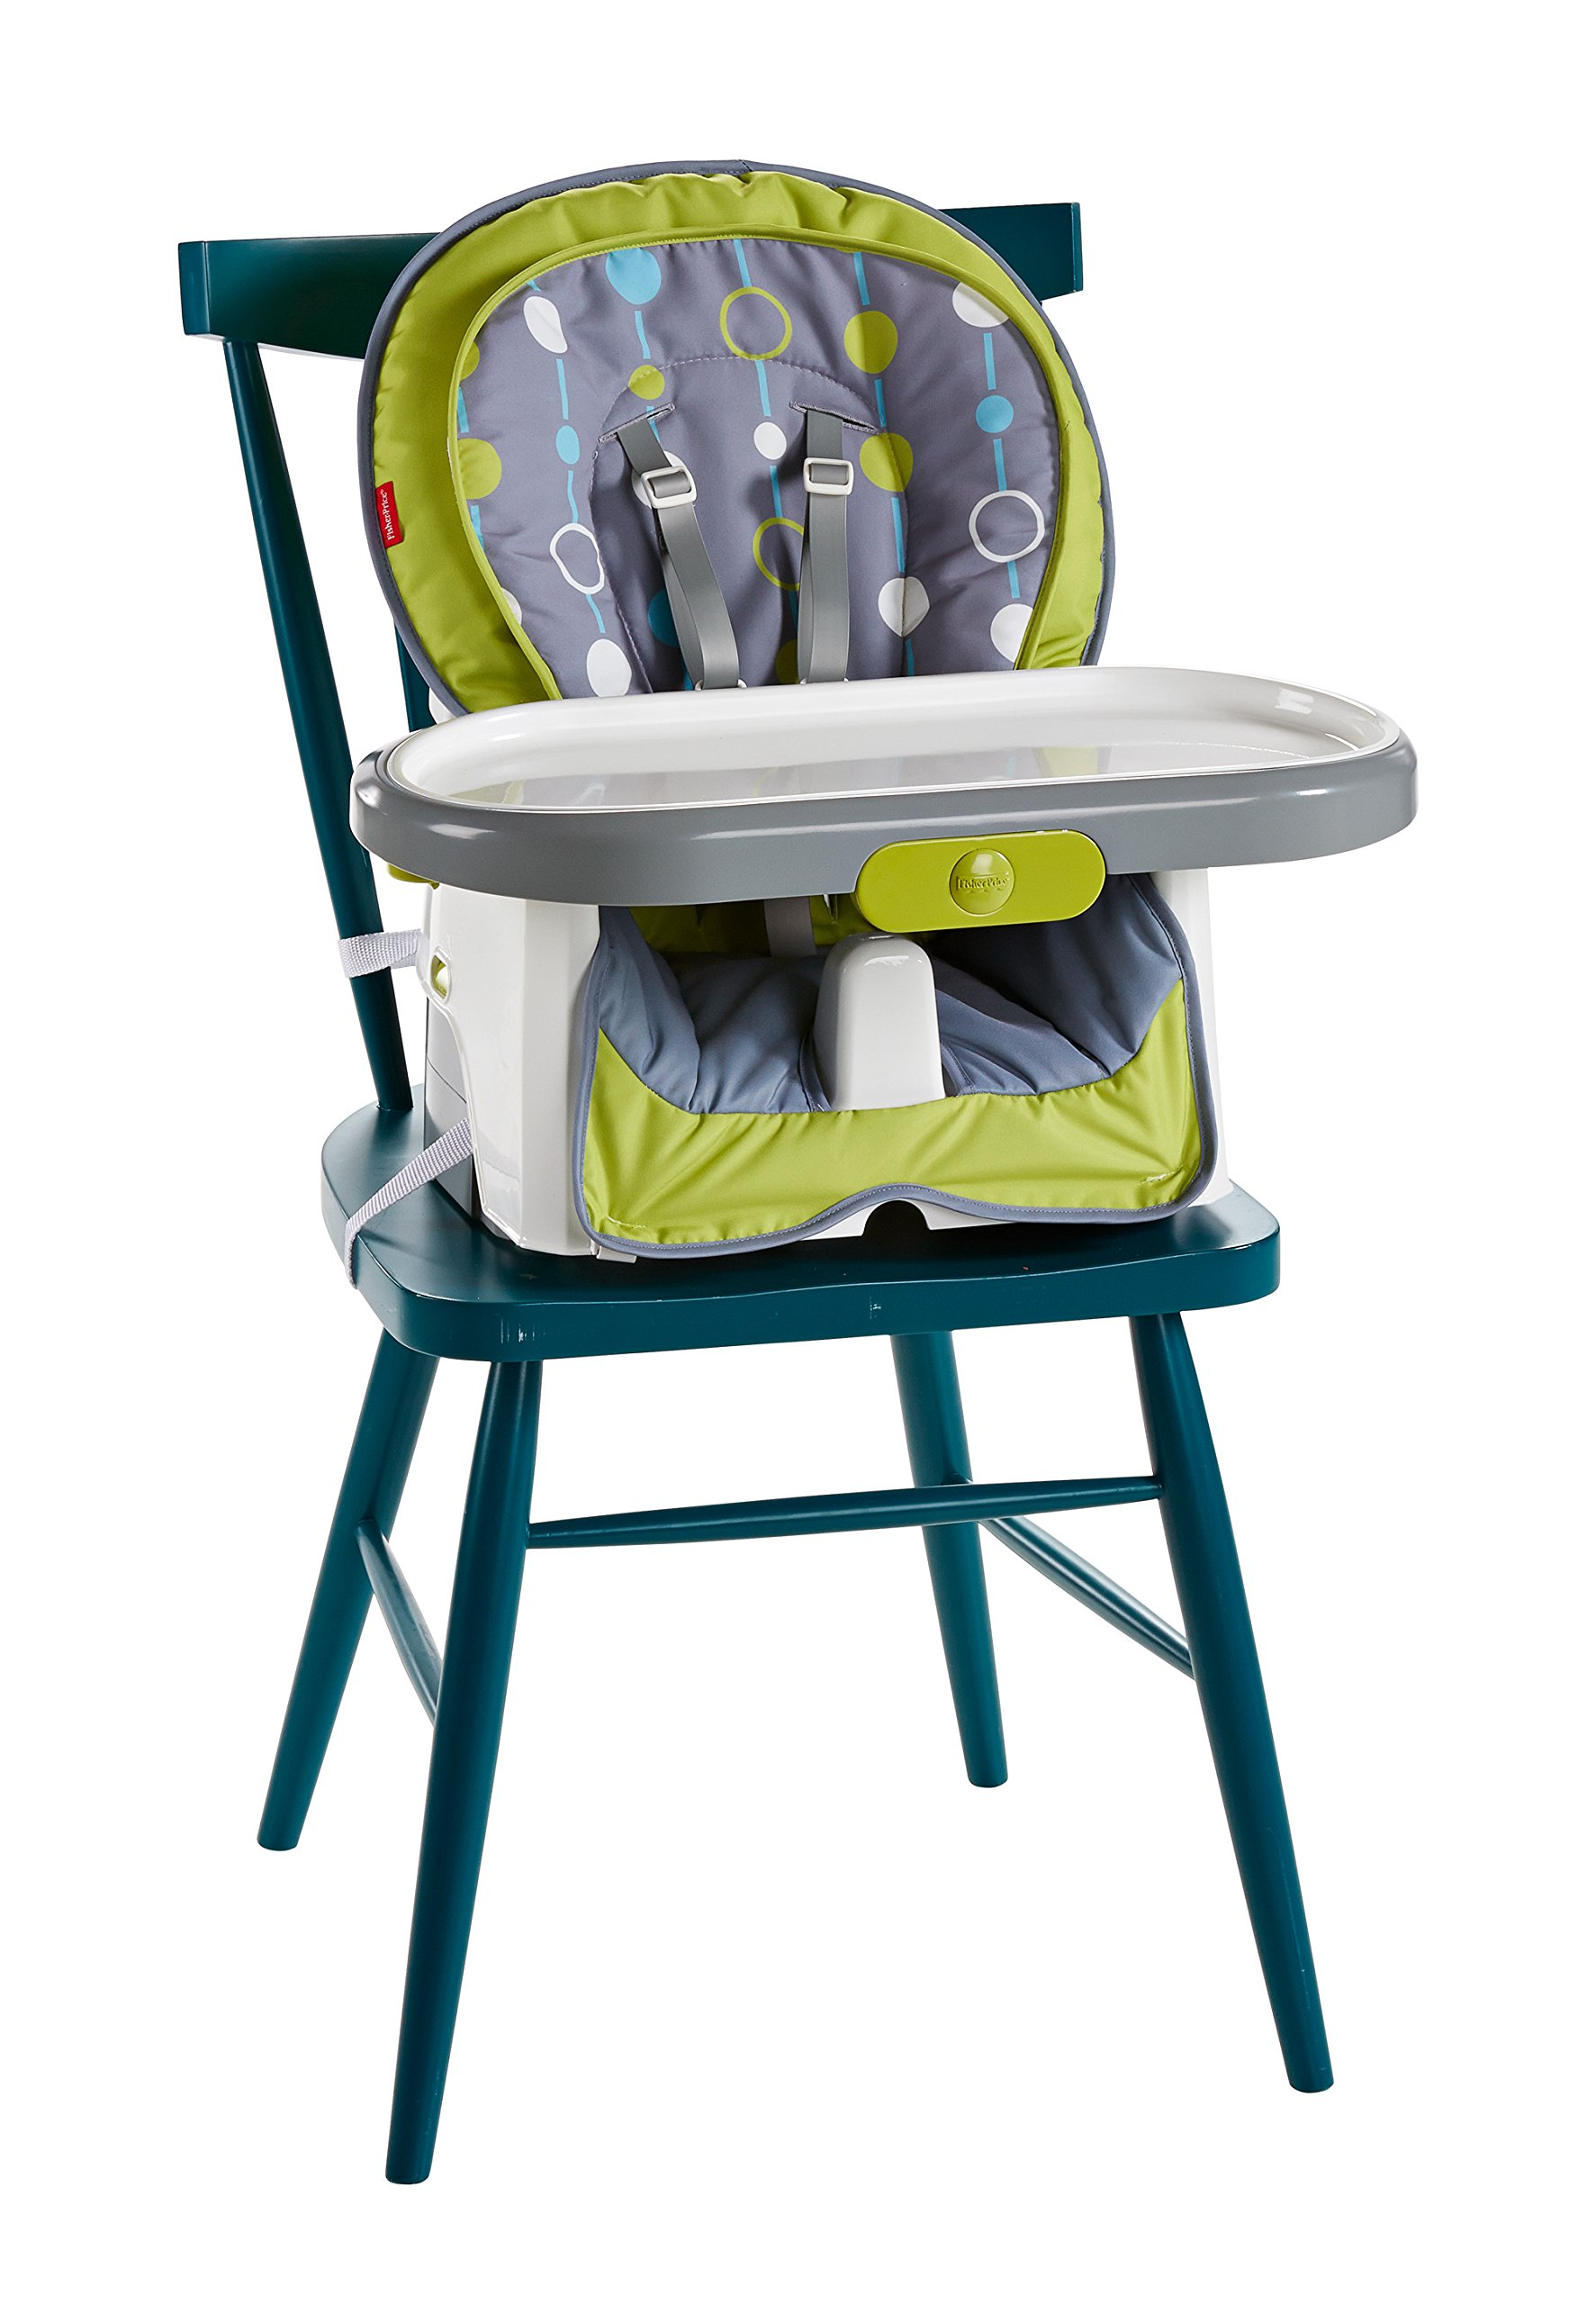 Fisher-Price 4-in-1 Total Clean High Chair, Green/Gray by Fisher-Price (Image #5)